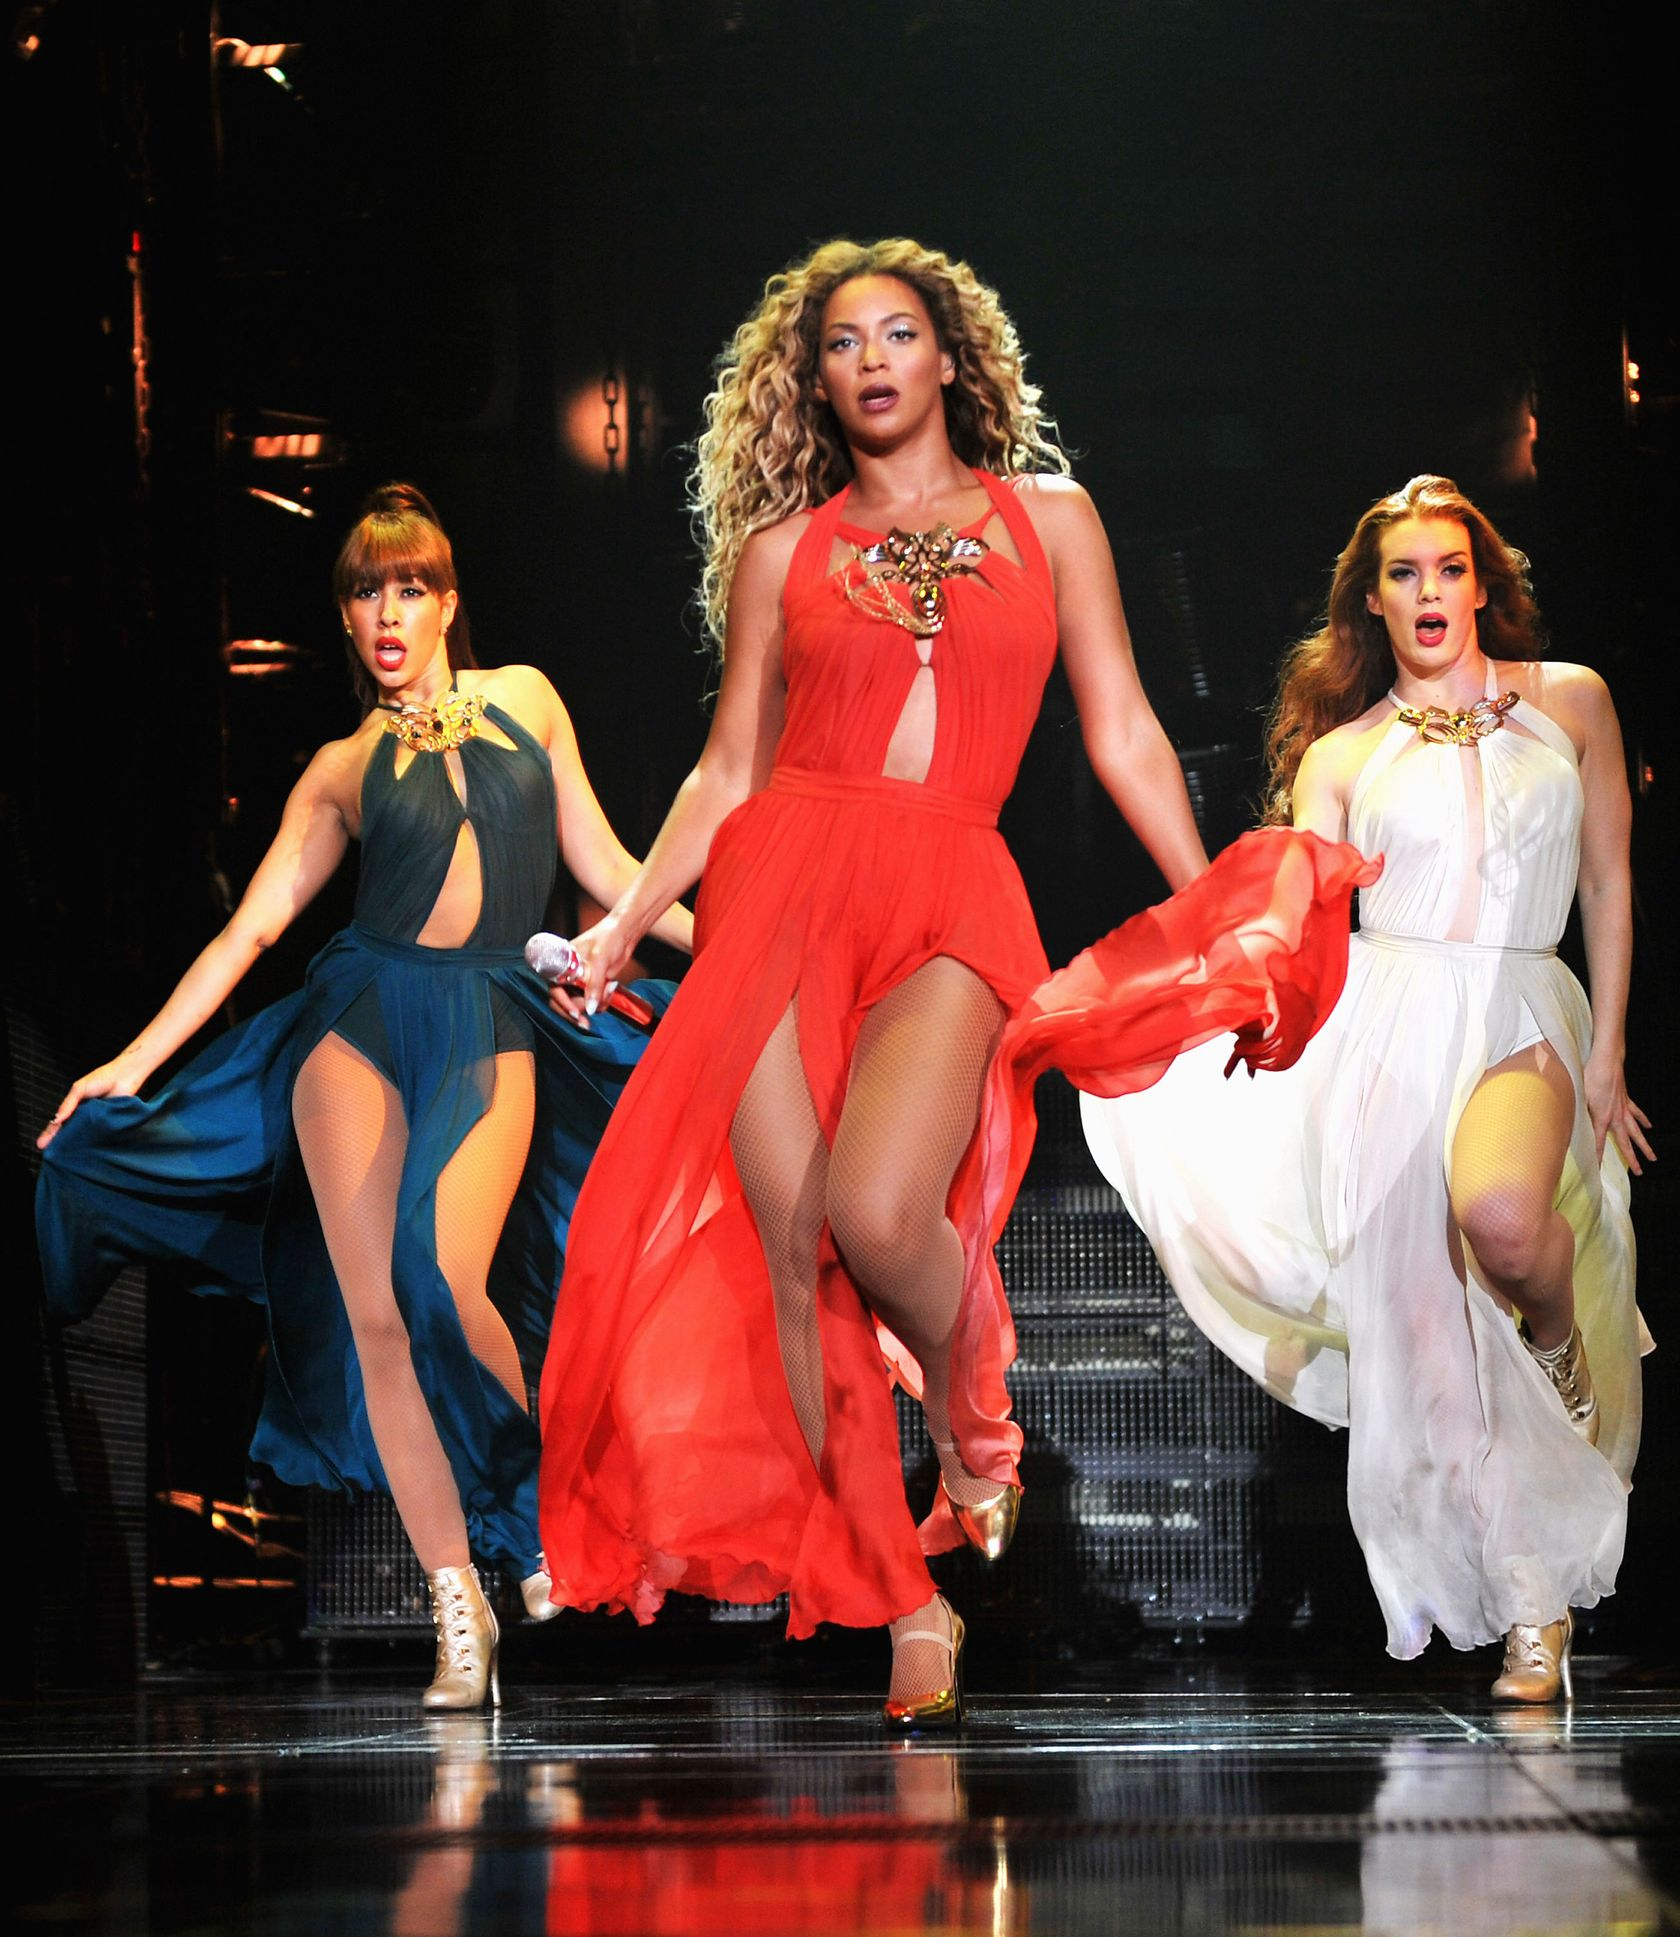 Beyonce mrs carter tour freakum dress images